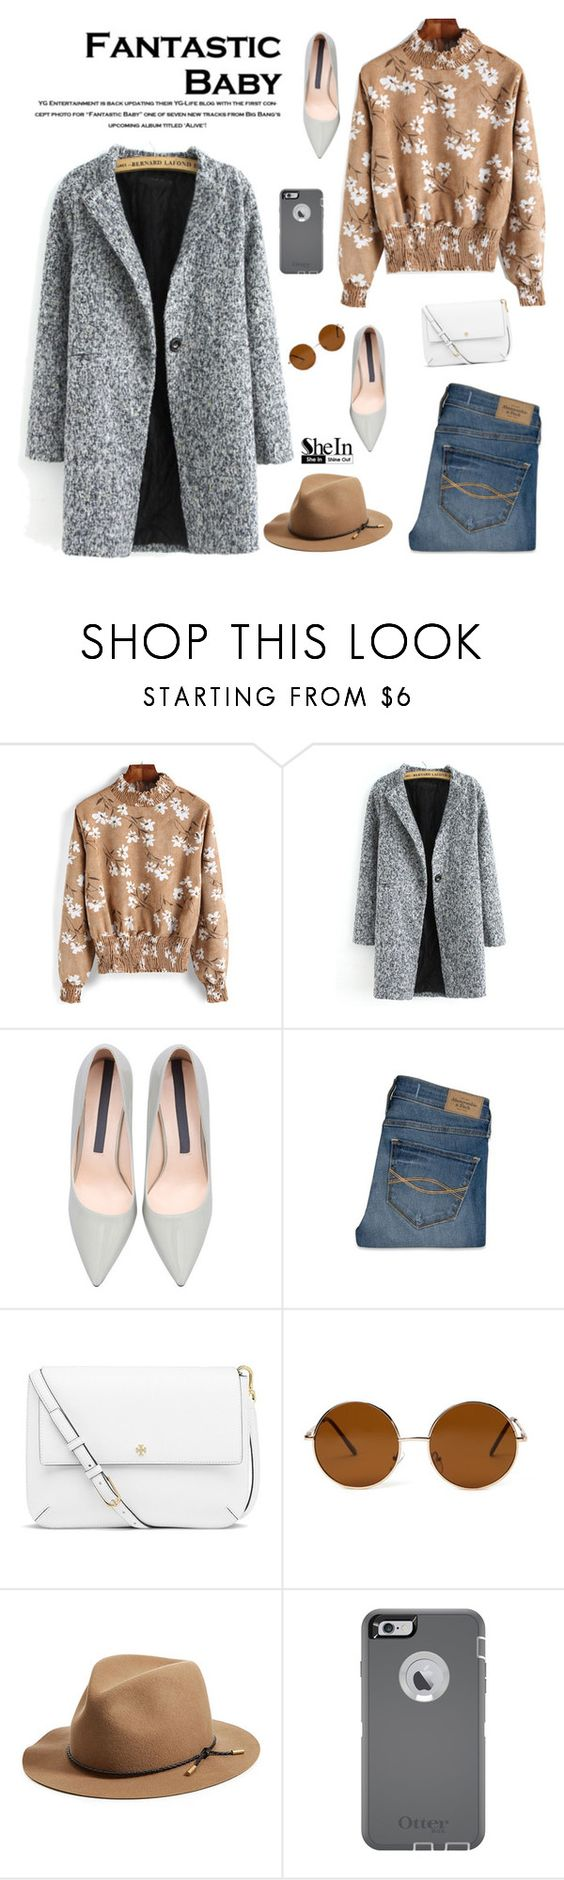 """Fantastic baby"" by sabinakopic ❤ liked on Polyvore featuring Abercrombie & Fitch, Tory Burch, Forever 21, rag & bone, OtterBox, women's clothing, women, female, woman and misses"